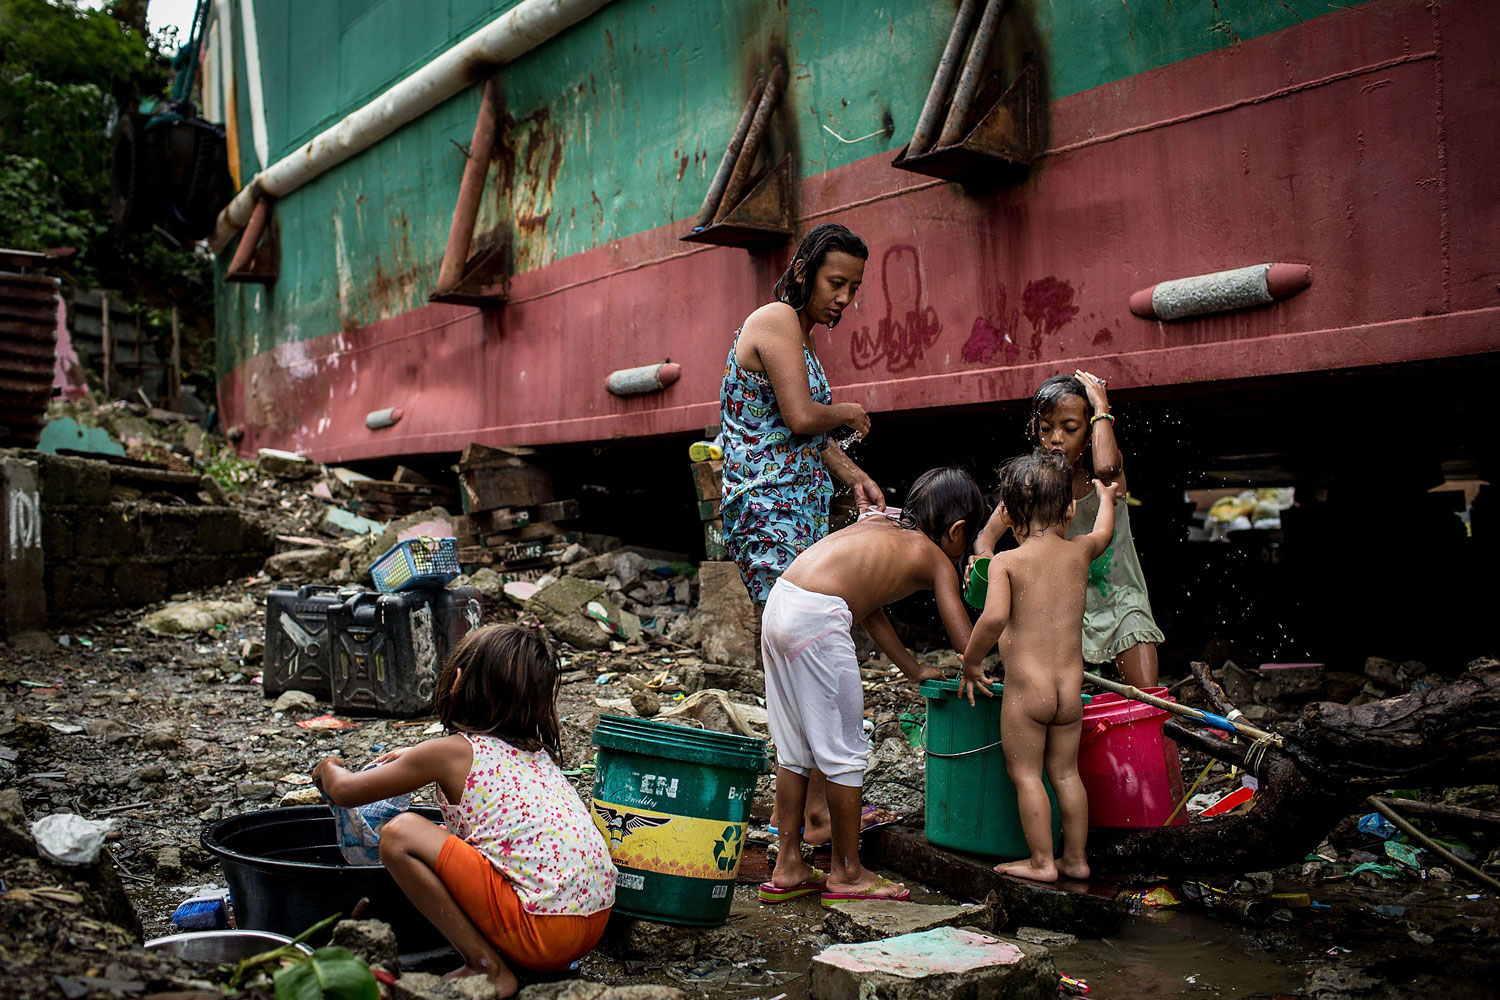 A family washes and cleans clothes next to the hull of a large ship grounded by Typhoon Haiyan on April 18, 2014 in Tacloban.